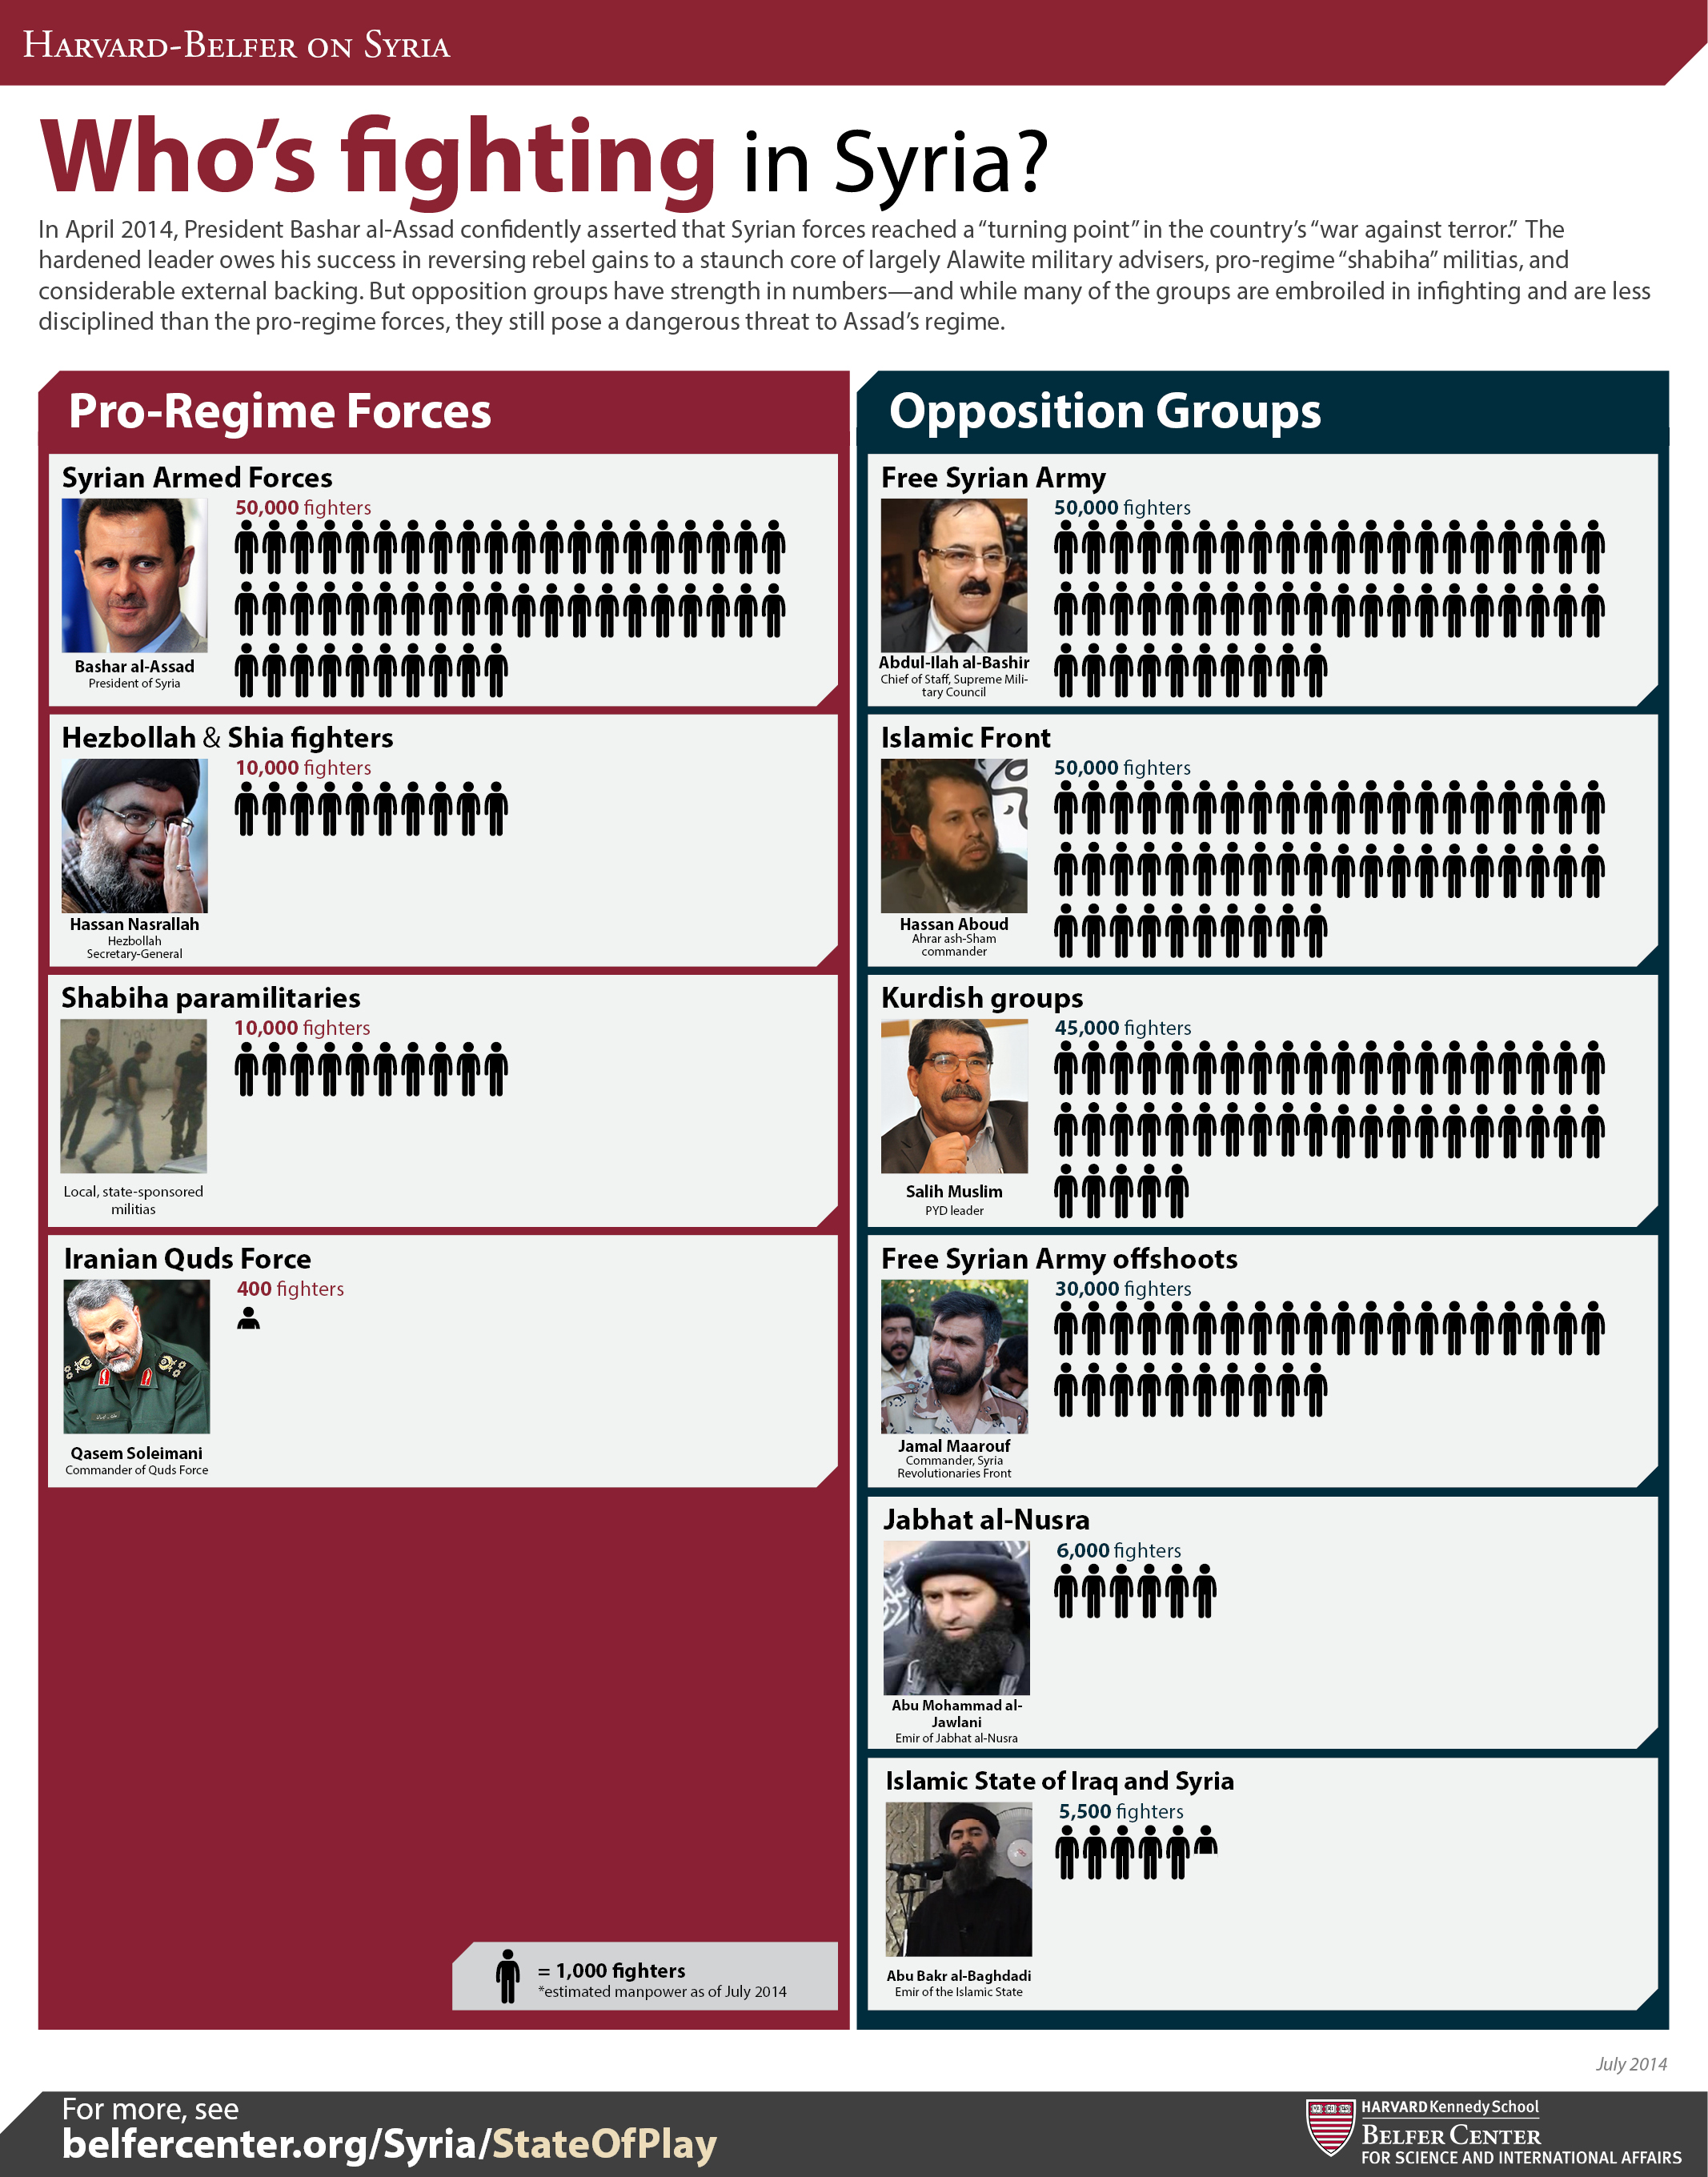 Groups and numbers fighting in Syria